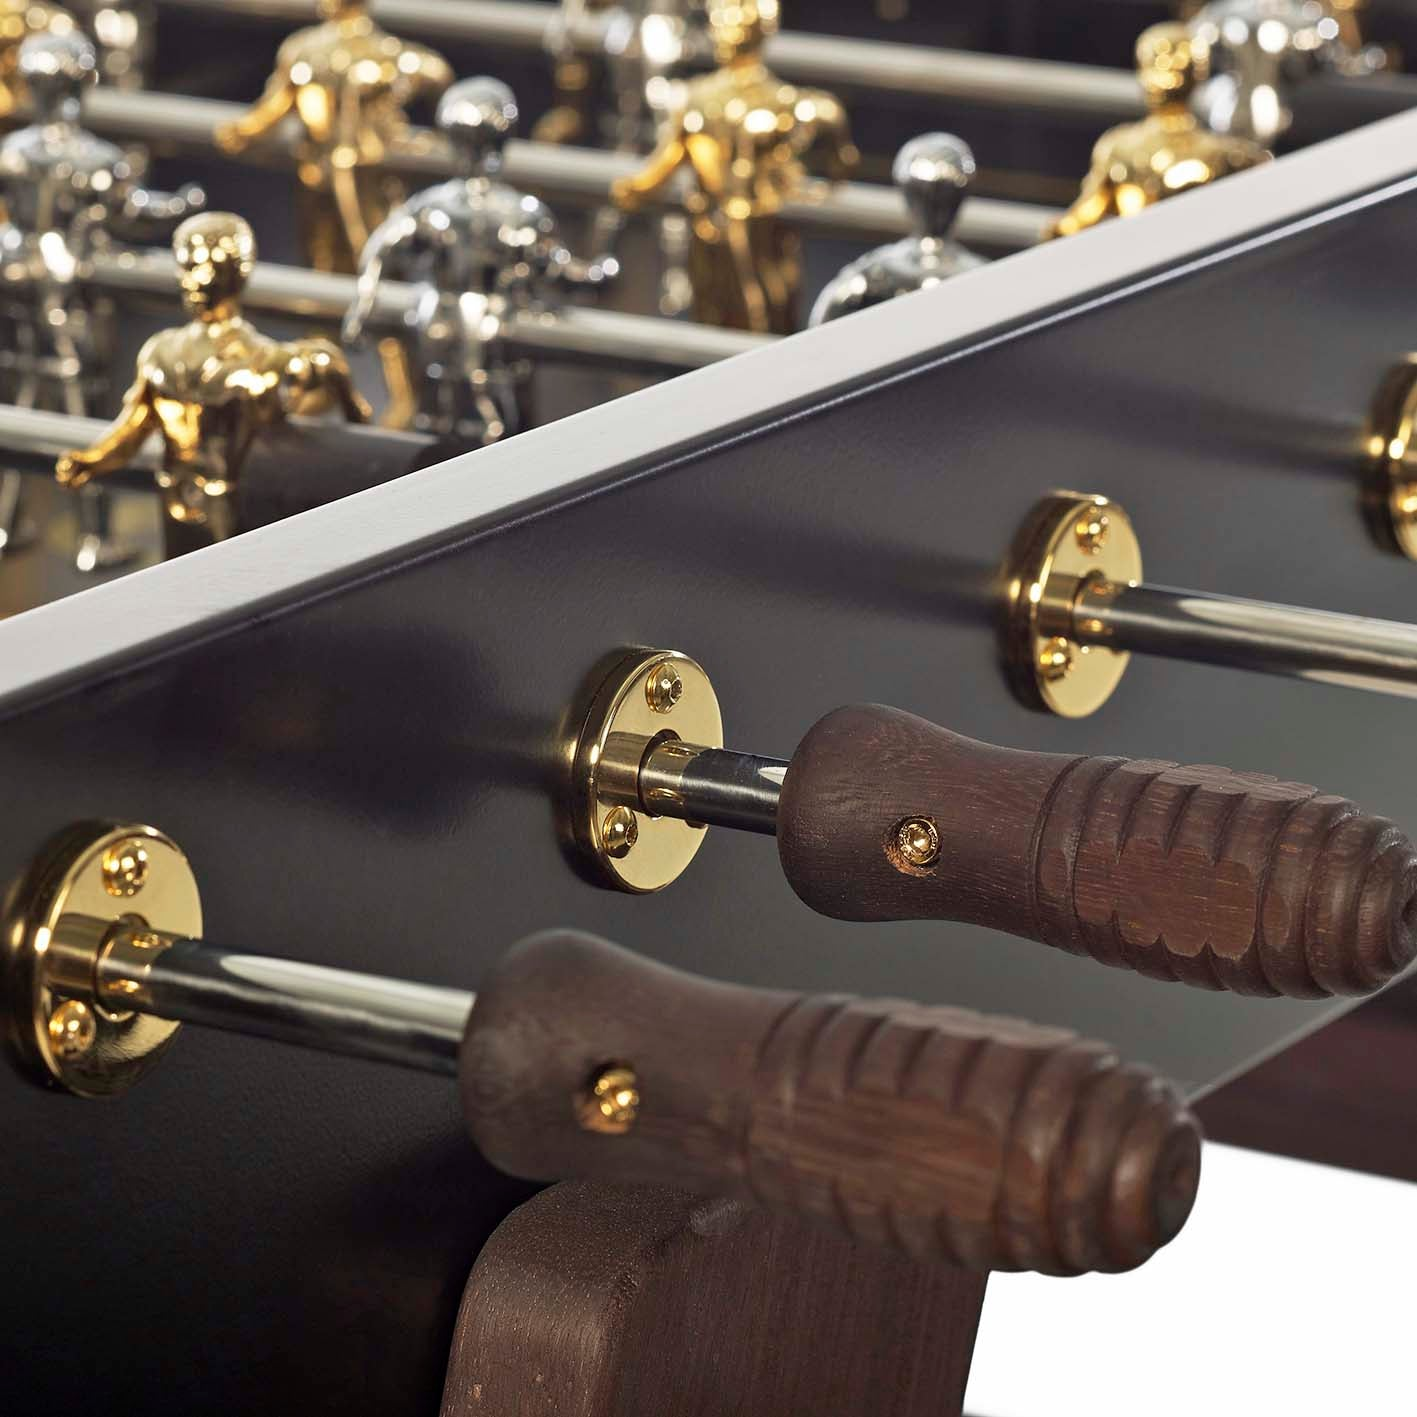 RS3 Wood Foosball Table in Gold Edition